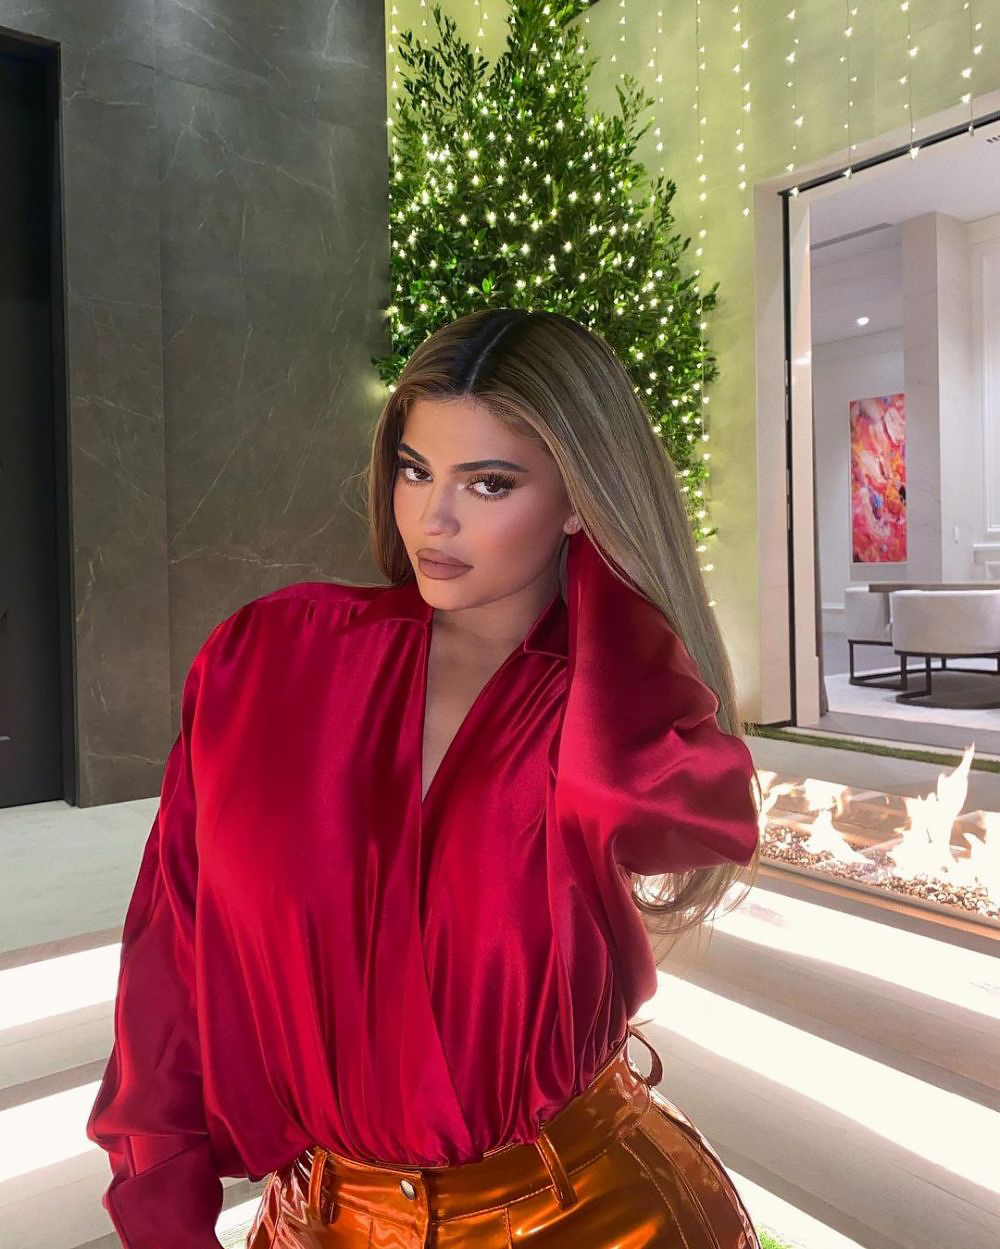 Kylie, Khloe and More Reveal Kardashian-Jenners' Holiday Decorations of 2020